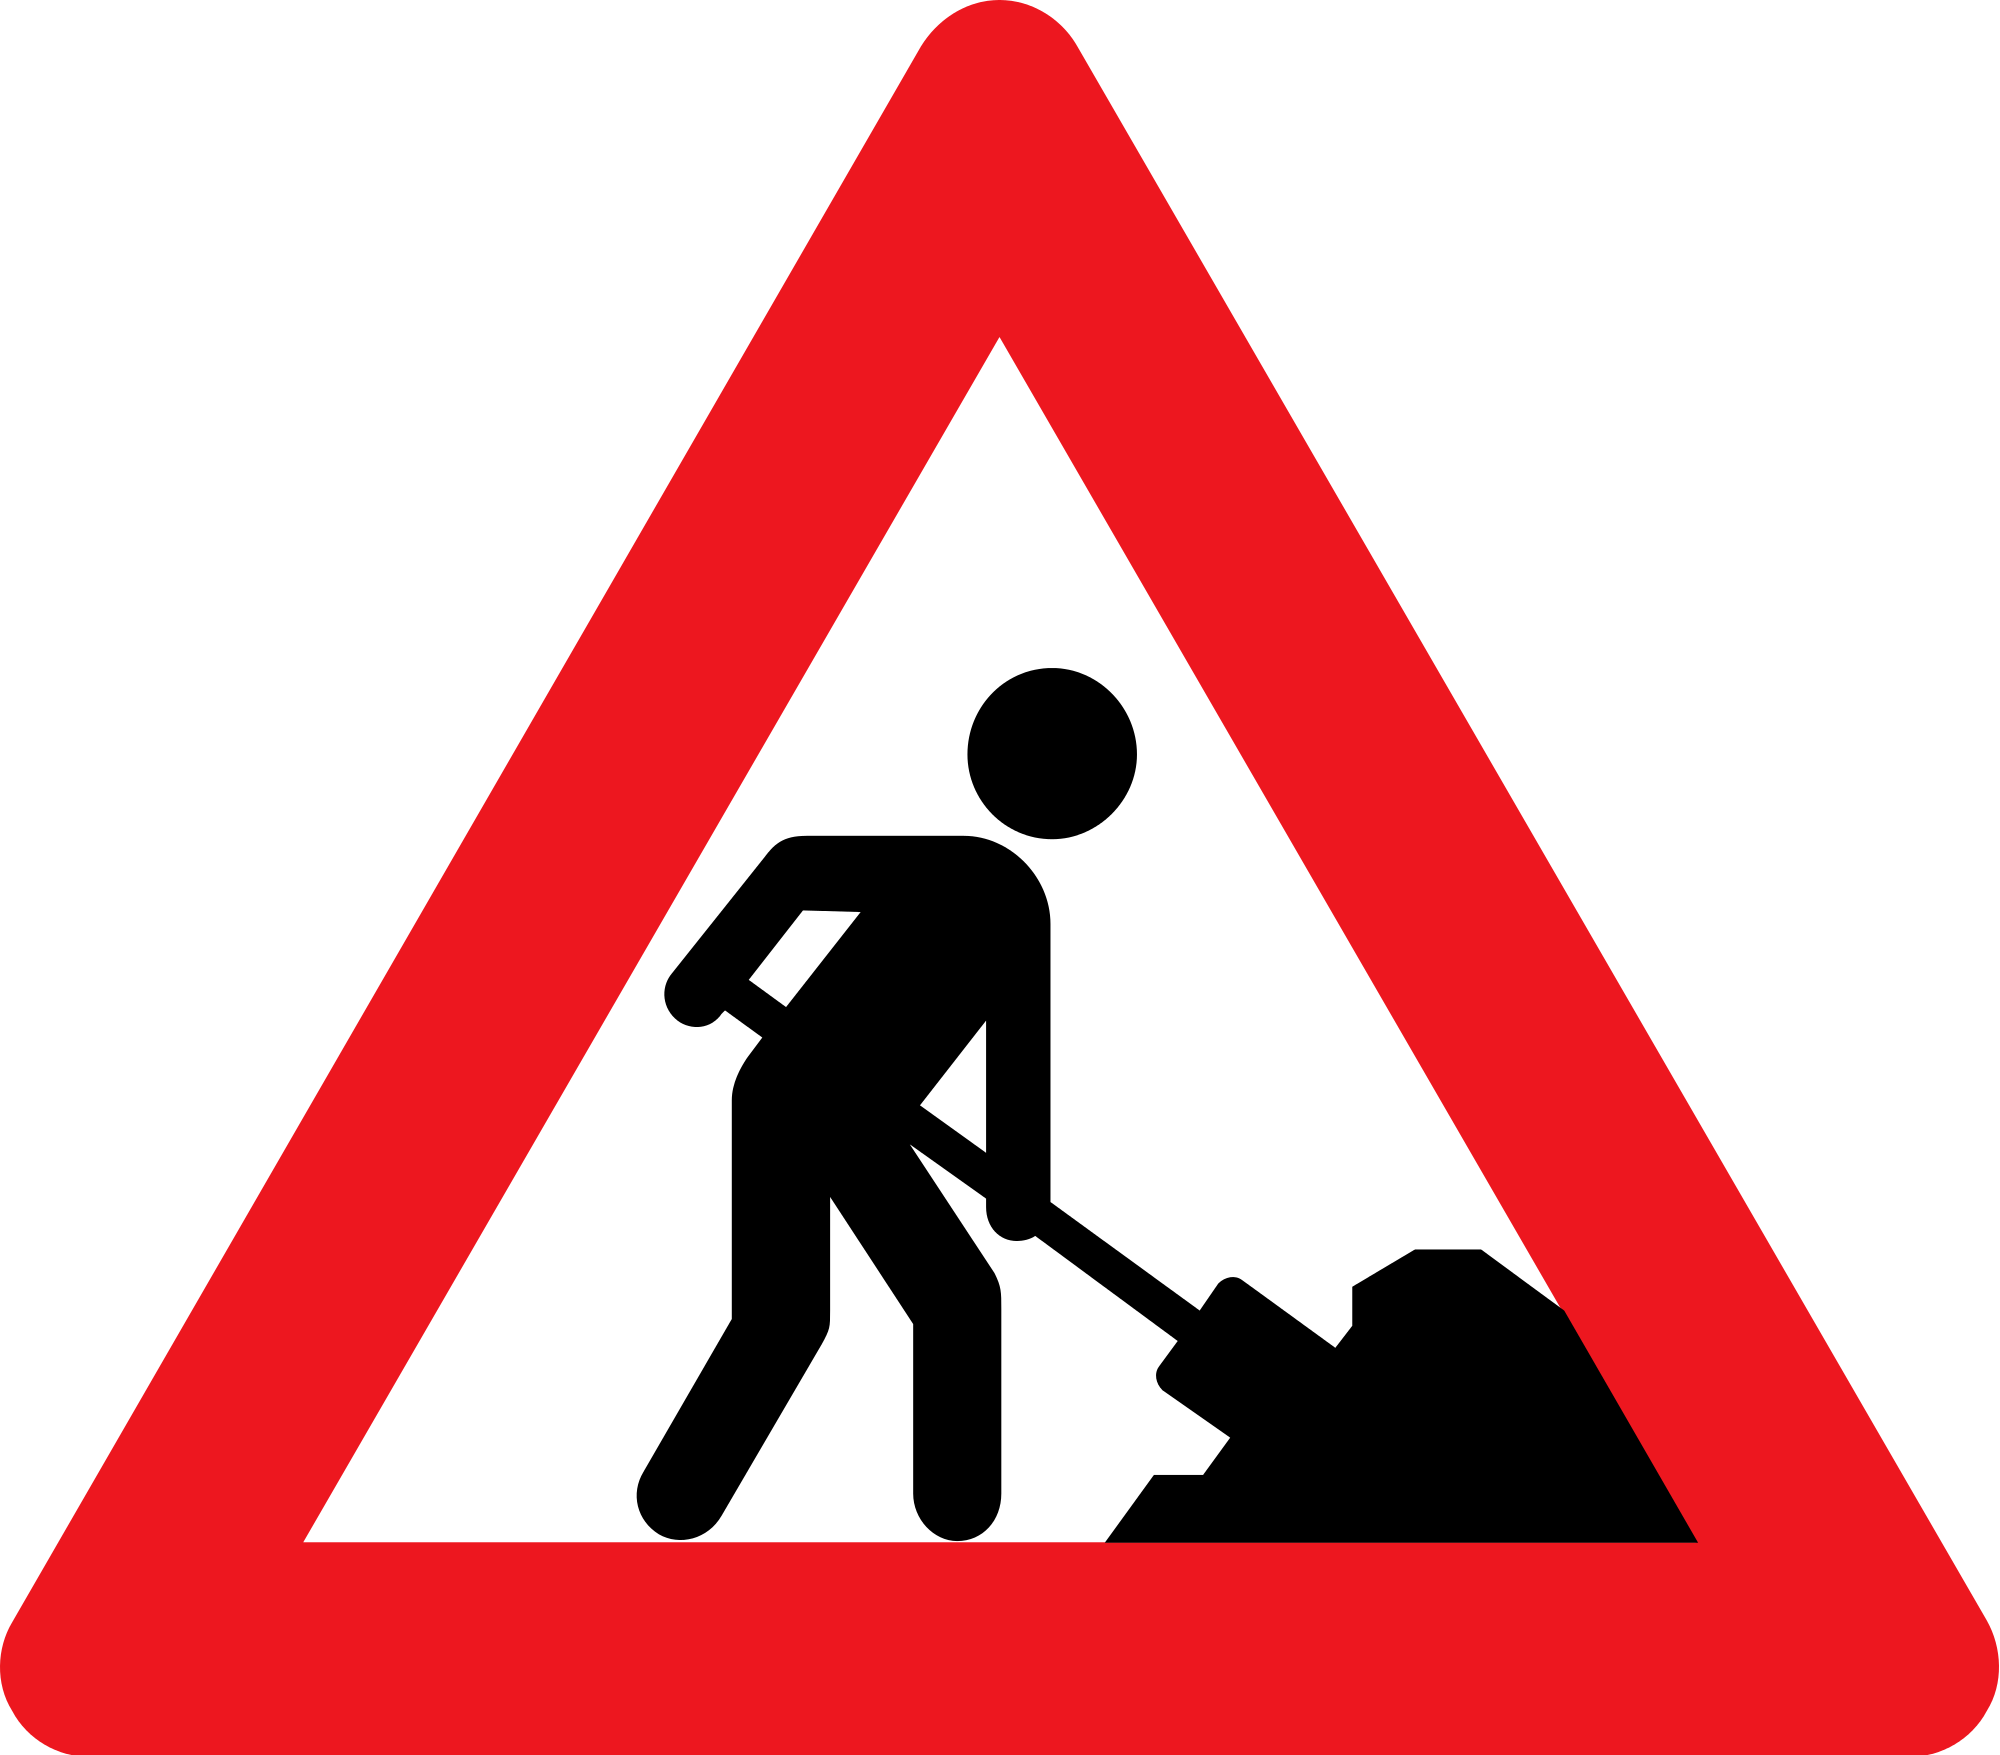 Men At Work Road Signs - ClipArt Best